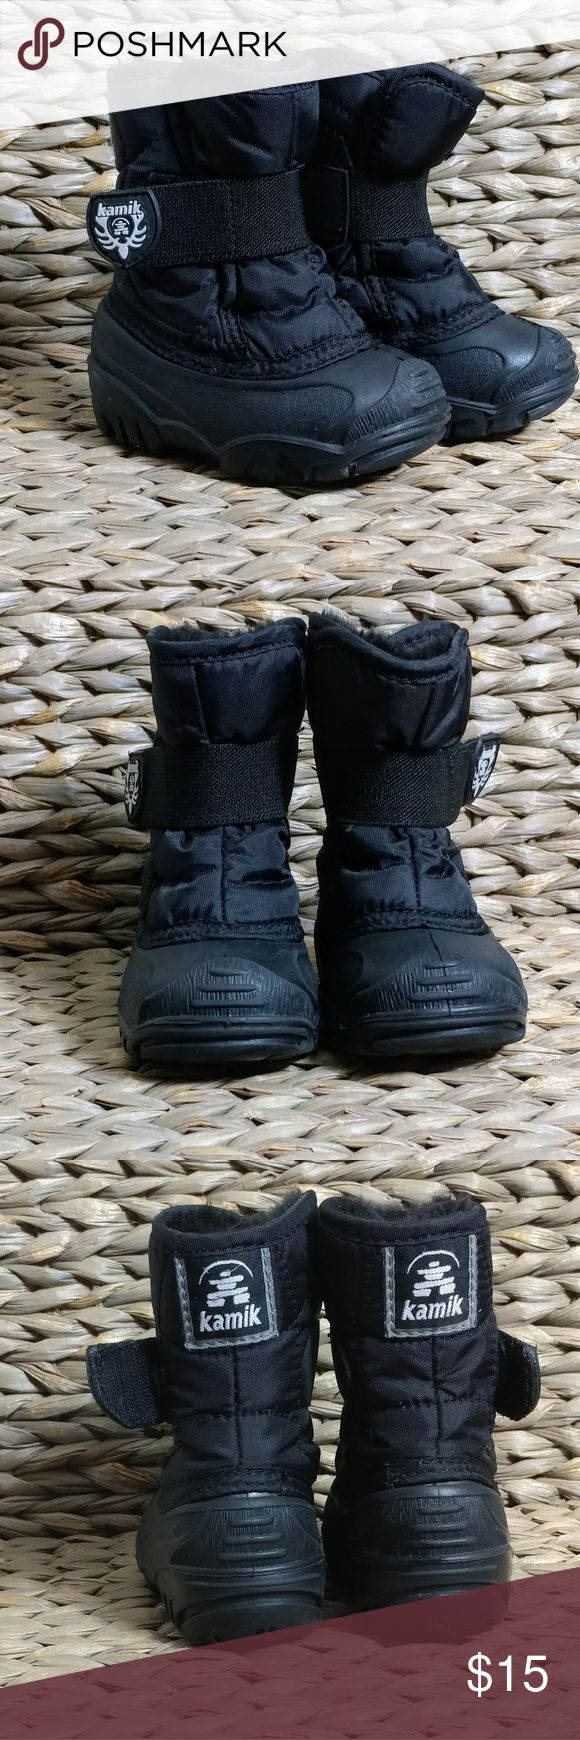 "Kamik Boys Snow Boots Toddler Snow/ Winter Boots. Boots stretch at the top to make it easier to slip little feet through.  Size 5 Height 6"" Kamik Shoes Rain & Snow Boots"